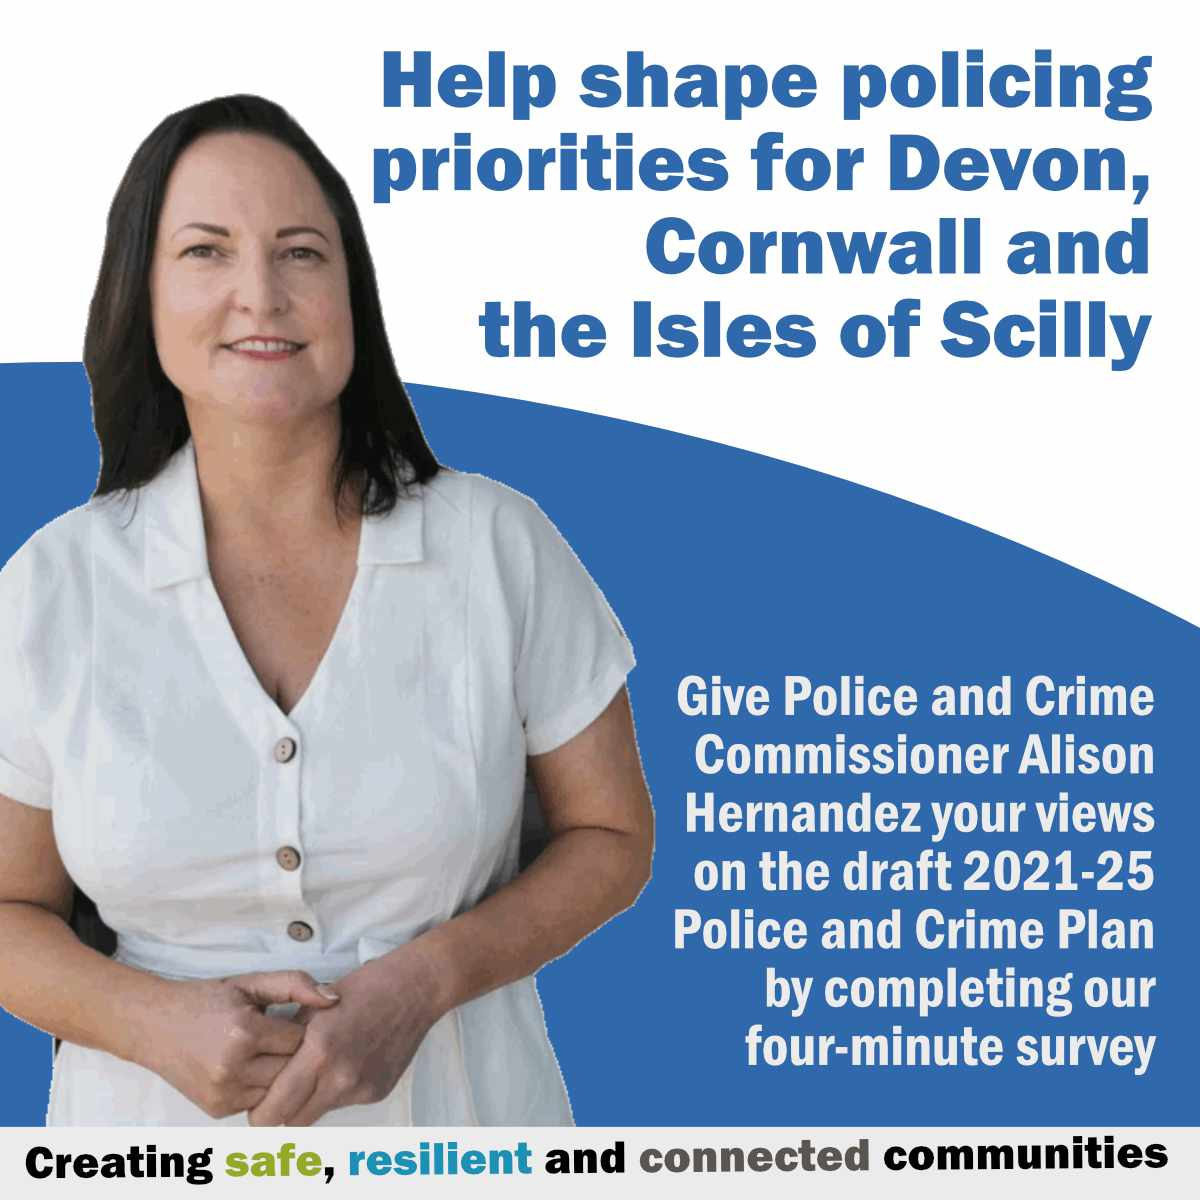 The commissioner thanks those who have taken part in her Police and Crime Plan survey